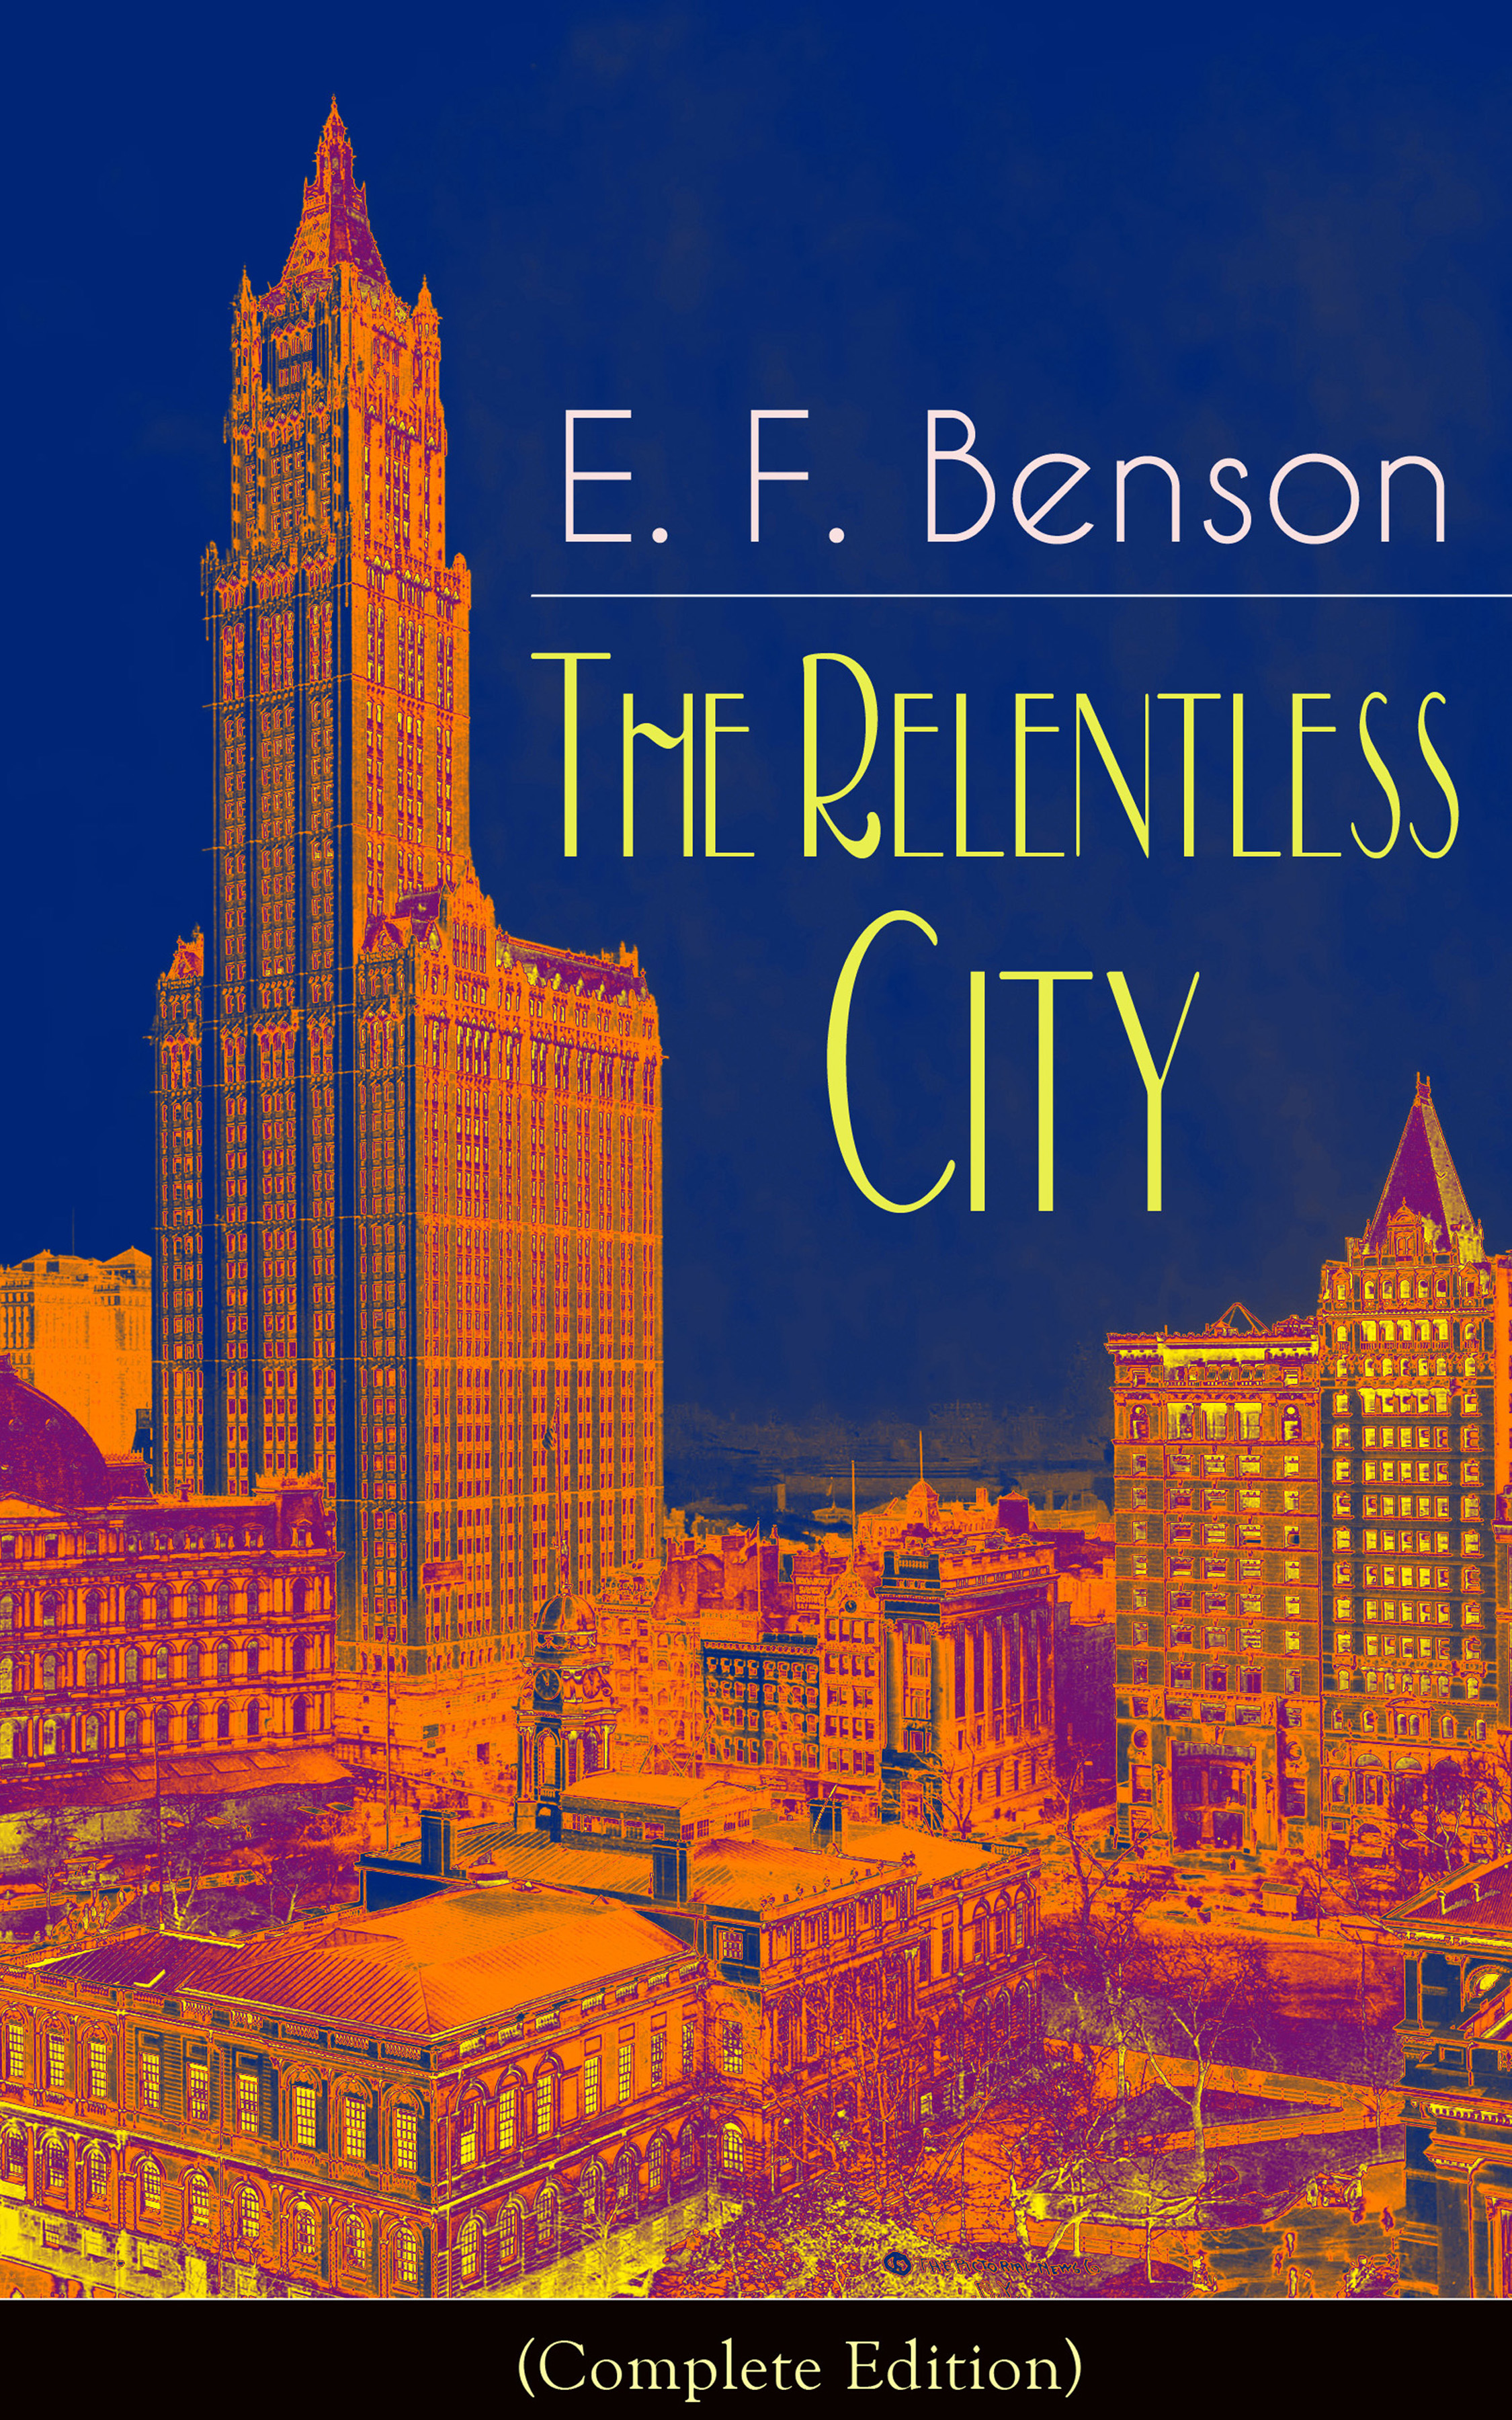 E. F. Benson The Relentless City (Complete Edition): A Satirical Novel from the author of Queen Lucia, Miss Mapp, Lucia in London, Mapp and Lucia, David Blaize, Dodo, Spook Stories, The Angel of Pain, The Rubicon and Paying Guests